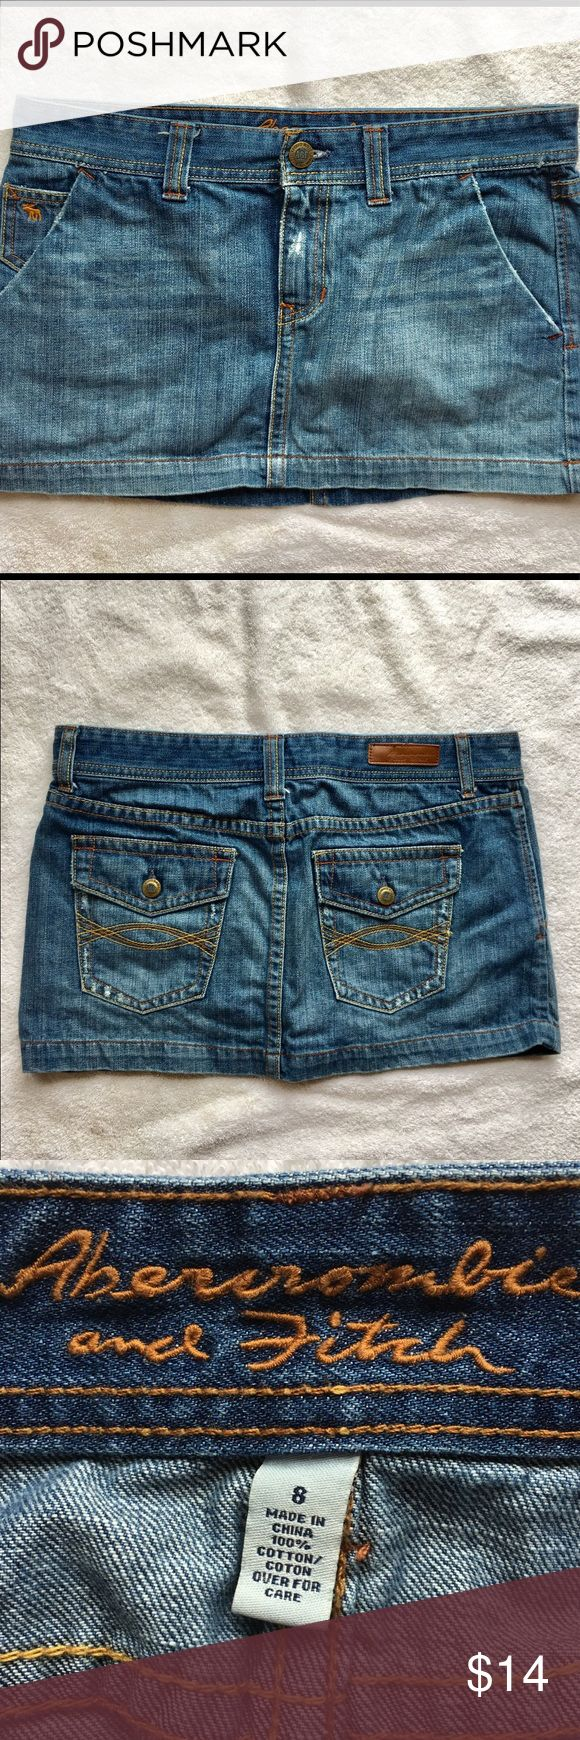 """Abercrombie & Fitch Denim Mini Skirt Make an offer!   I use scented detergent and perfume   Low rise mini skirt from Abercrombie & Fitch in a junior's size 8. The rise is about 6"""", length is about 11"""", and waistband is about 17"""" across laid flat so 34"""" around in total. In wonderful condition with no flaws at all. Price negotiable but NO TRADES. I cannot do try-on photos, this is way too big for me, sorry!  Offers: ✅ Trades: ❌ Abercrombie & Fitch Skirts Mini"""